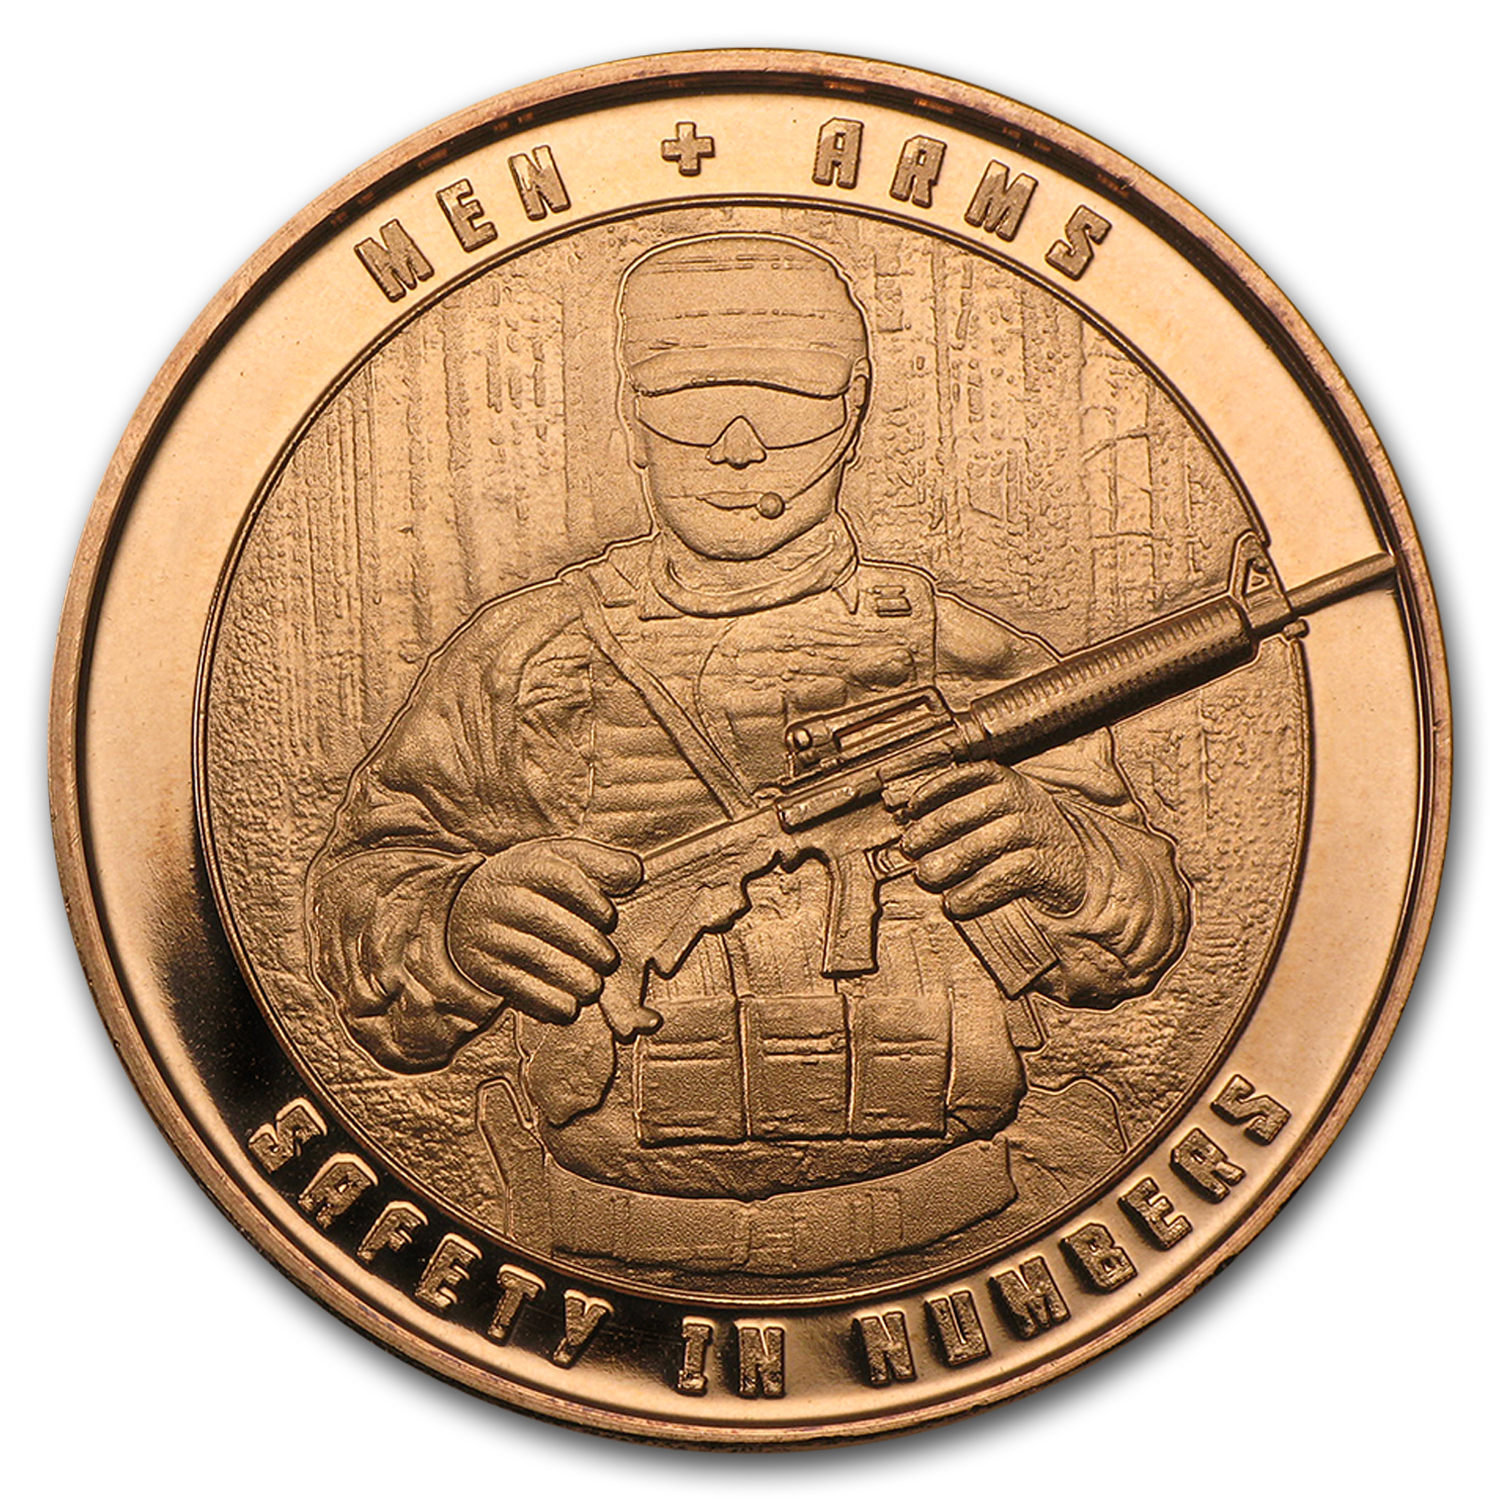 1 oz Copper Round - Men and Arms